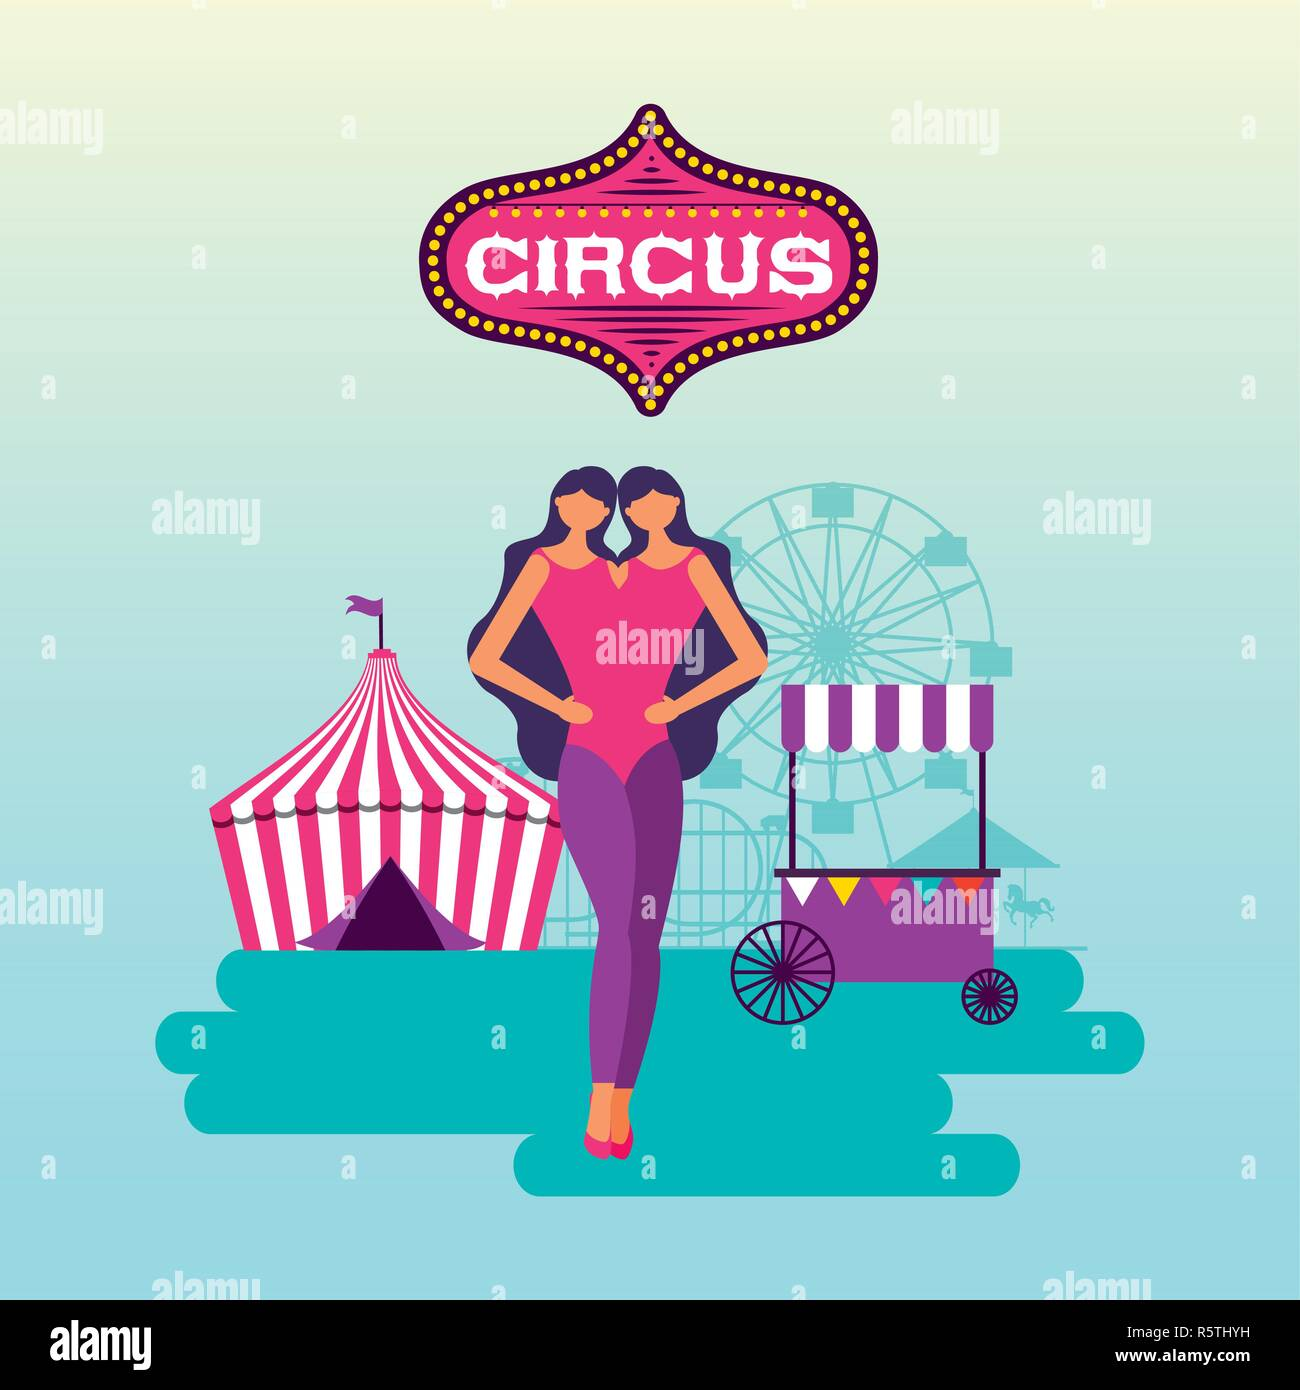 Les jumeaux unitted cirque stand tente vector illustration Photo Stock